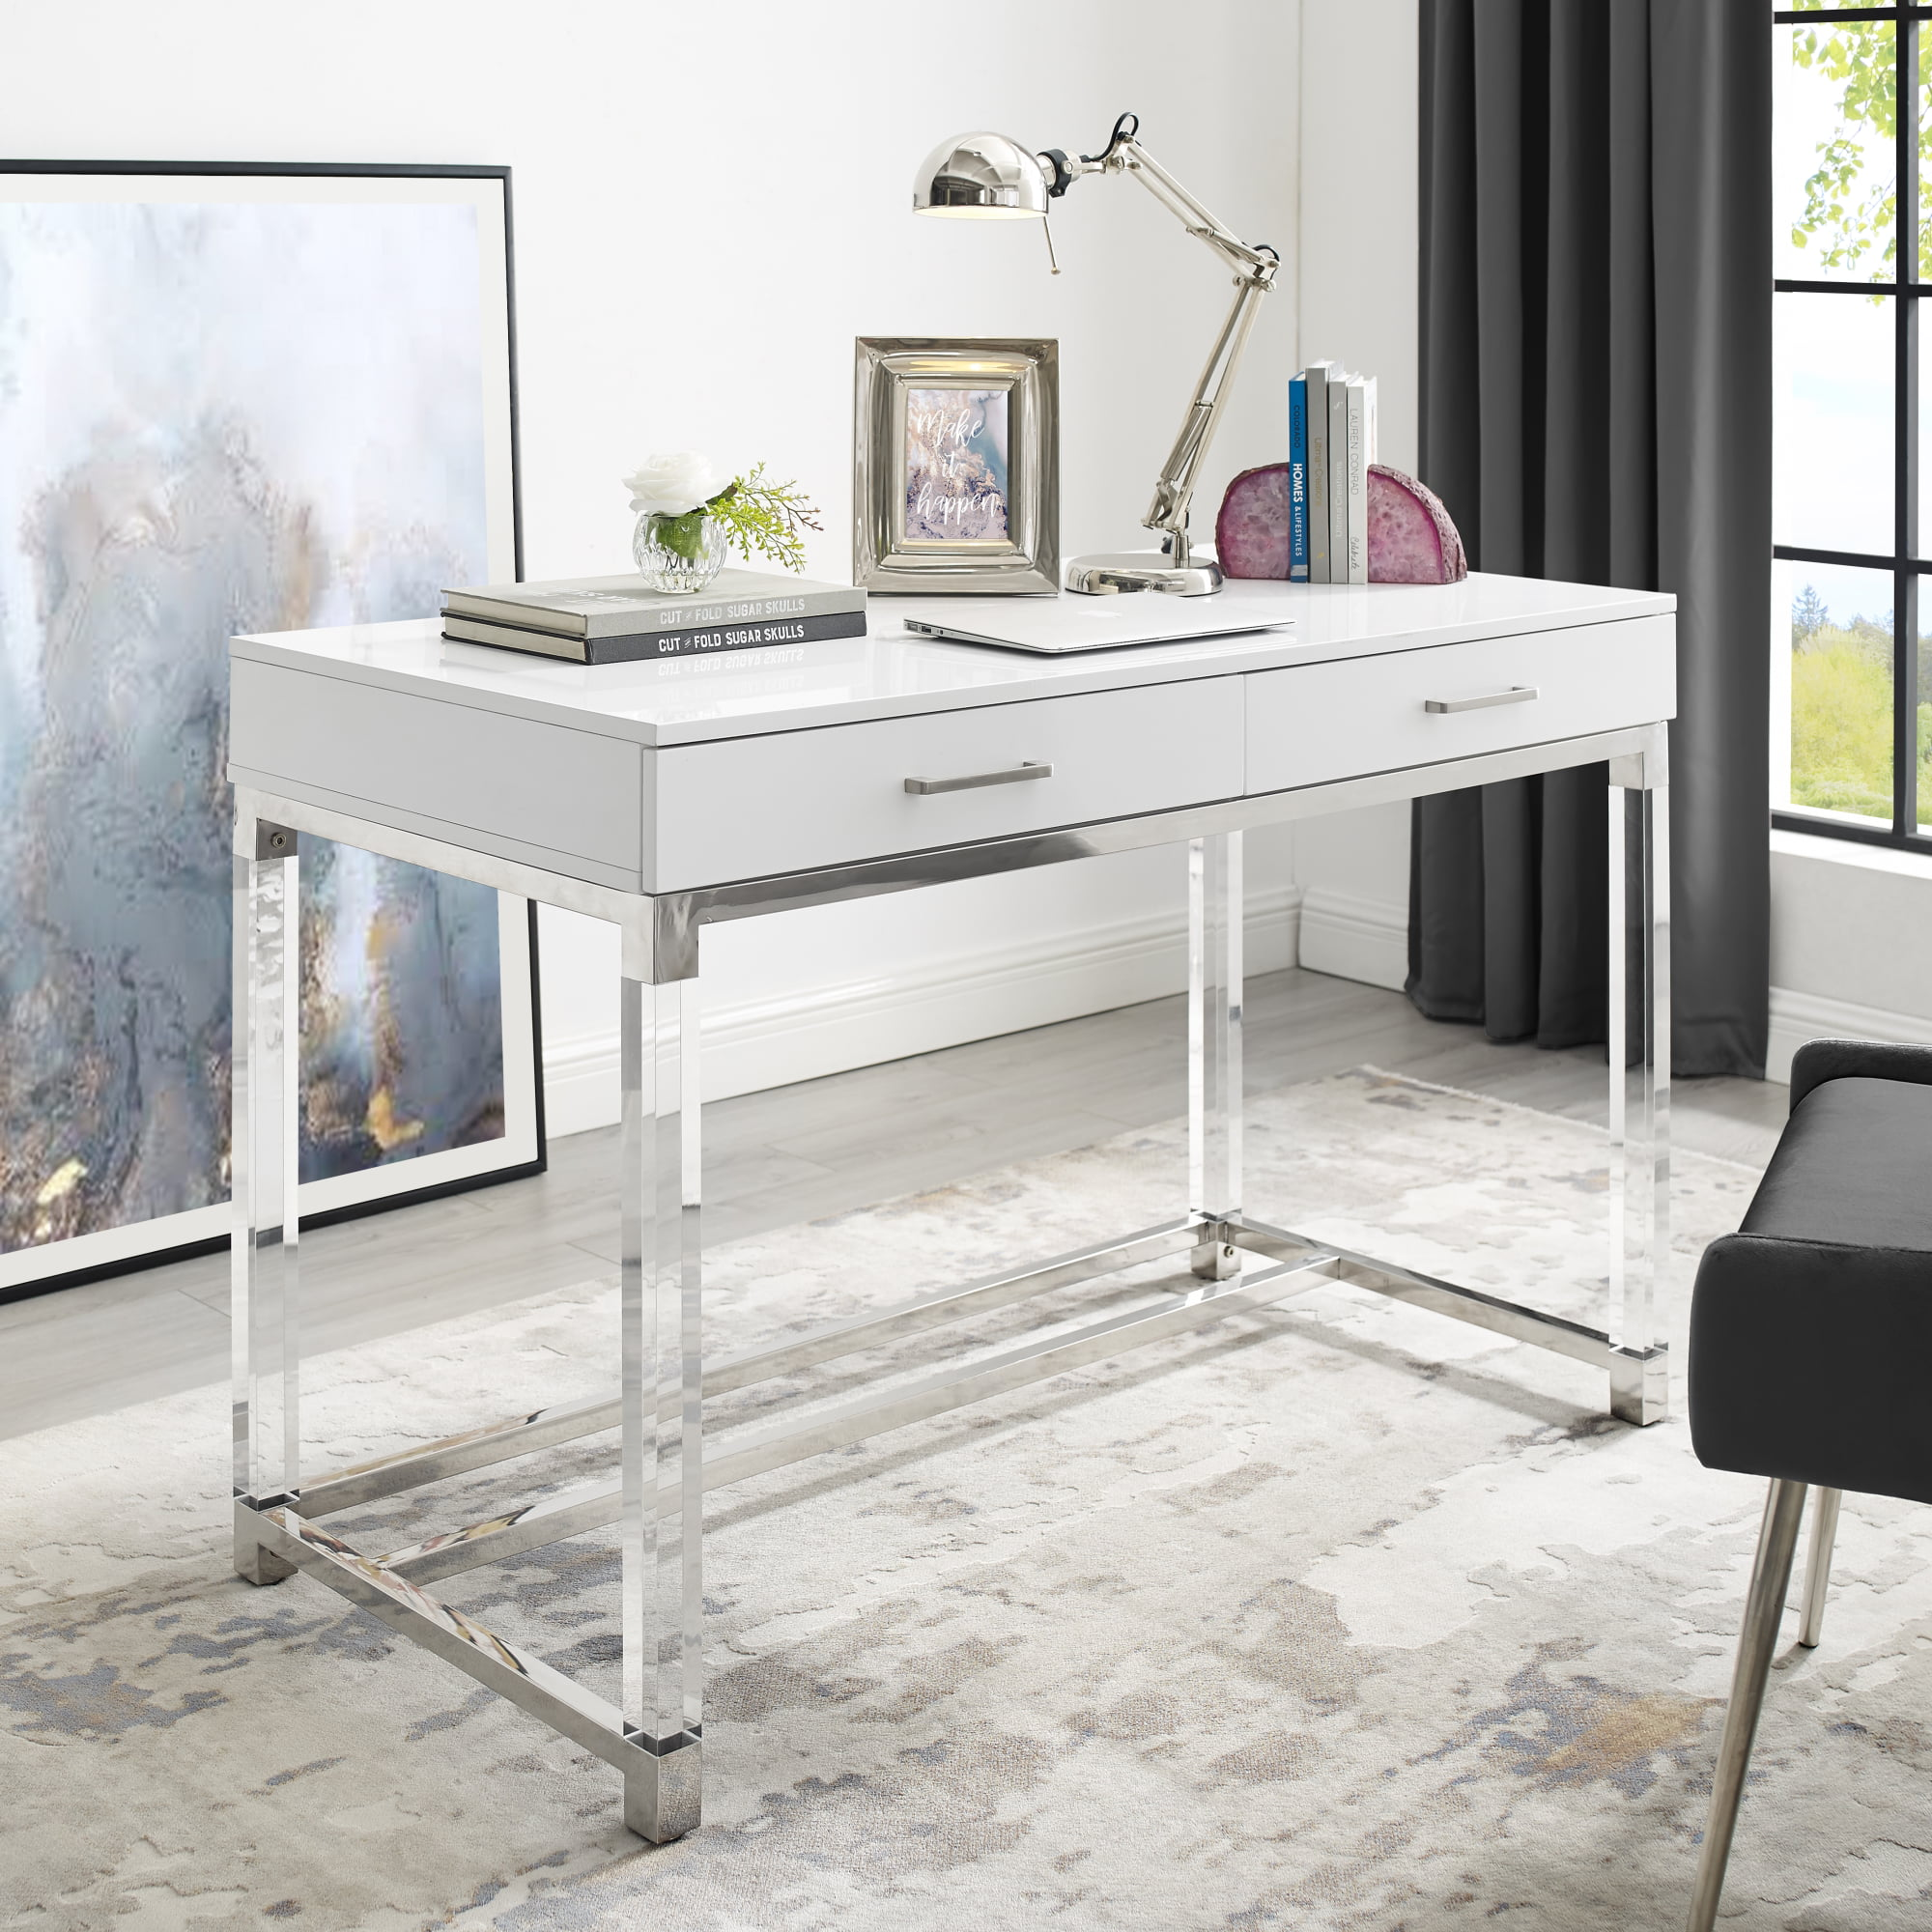 Alena White Writing Desk - 46 Drawers  High Gloss  Acrylic Legs  Chrome  Stainless Steel Base  Modern Design